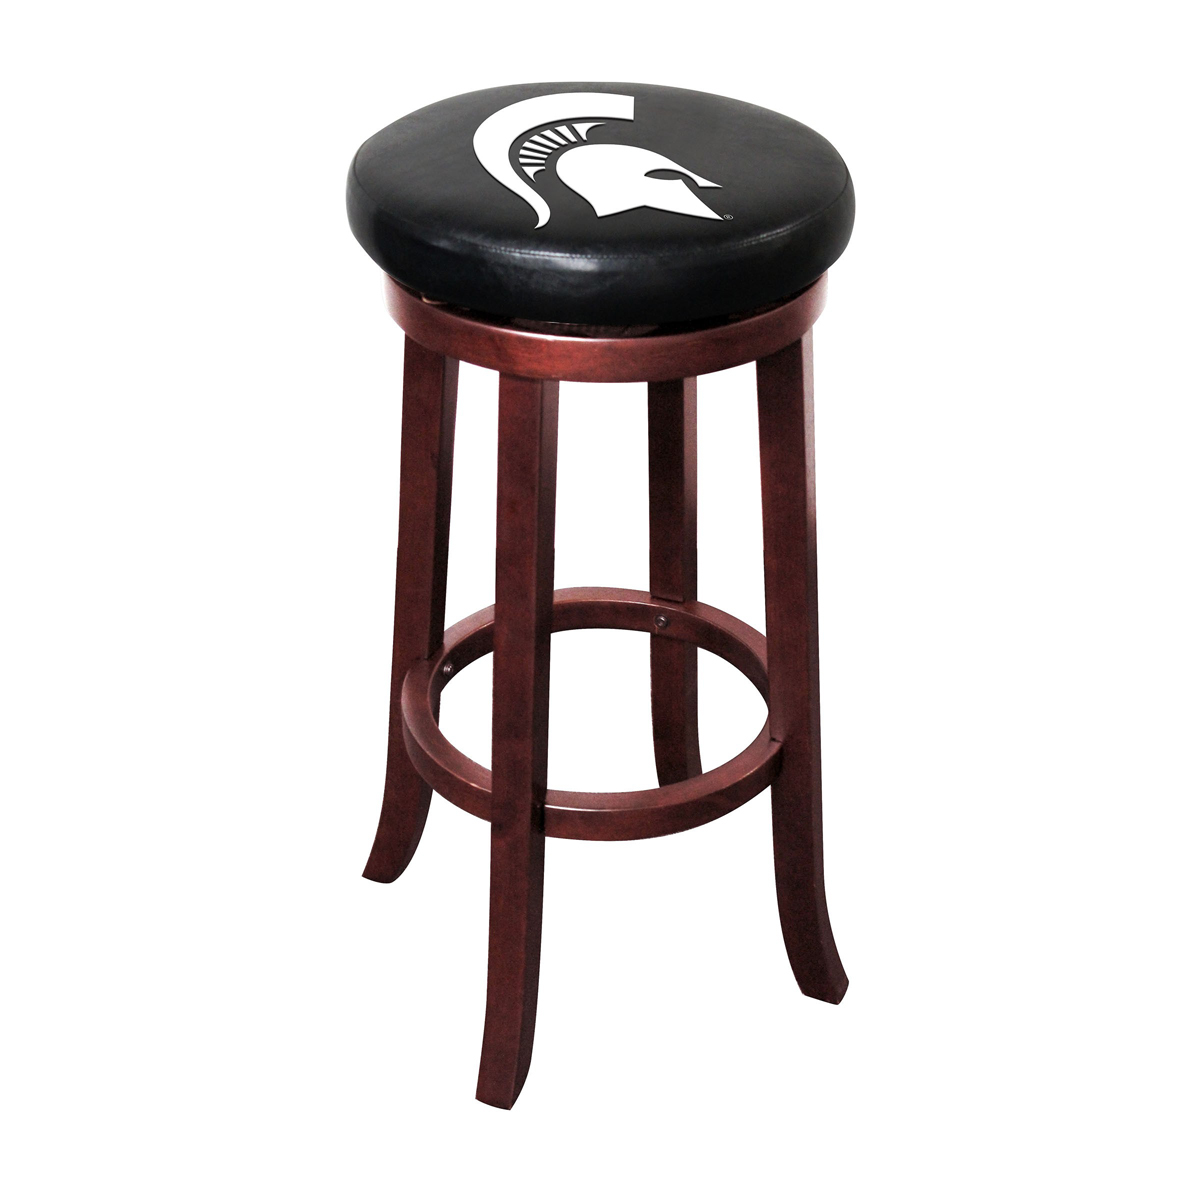 8 Michigan State Collegiate Logo Pool Table Clone